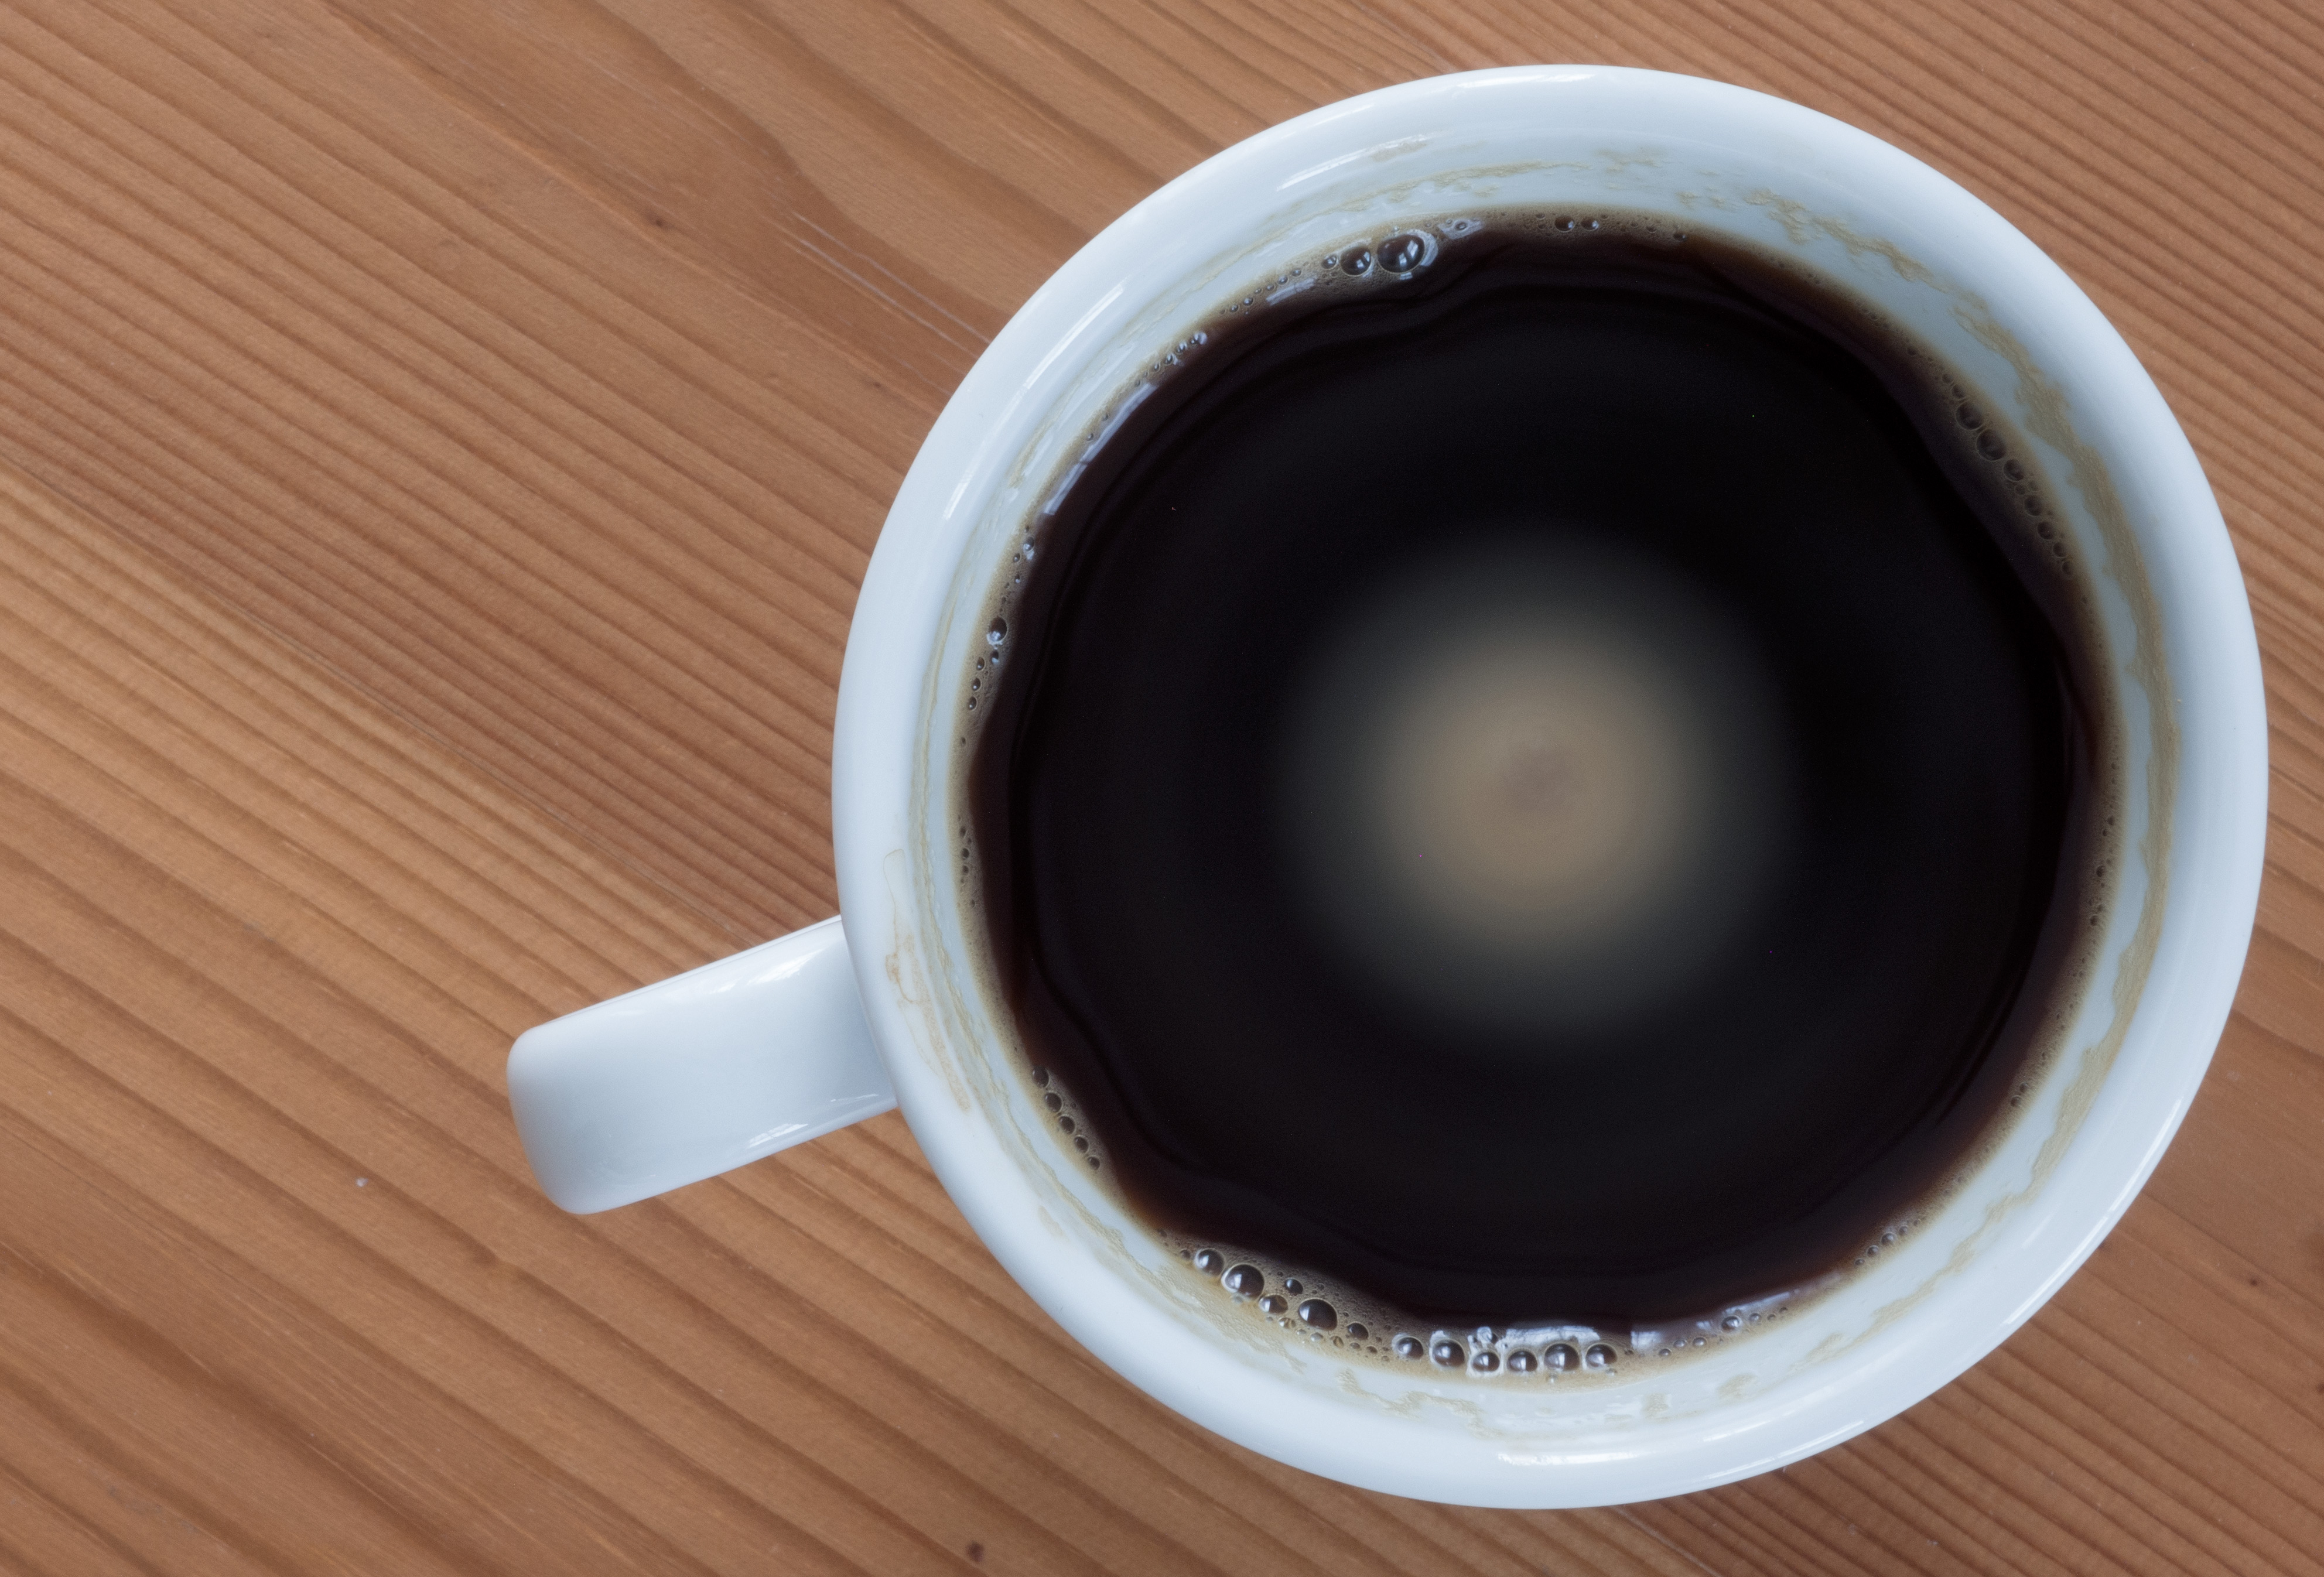 Free Image: Cup Of Coffee | Libreshot Public Domain Photos